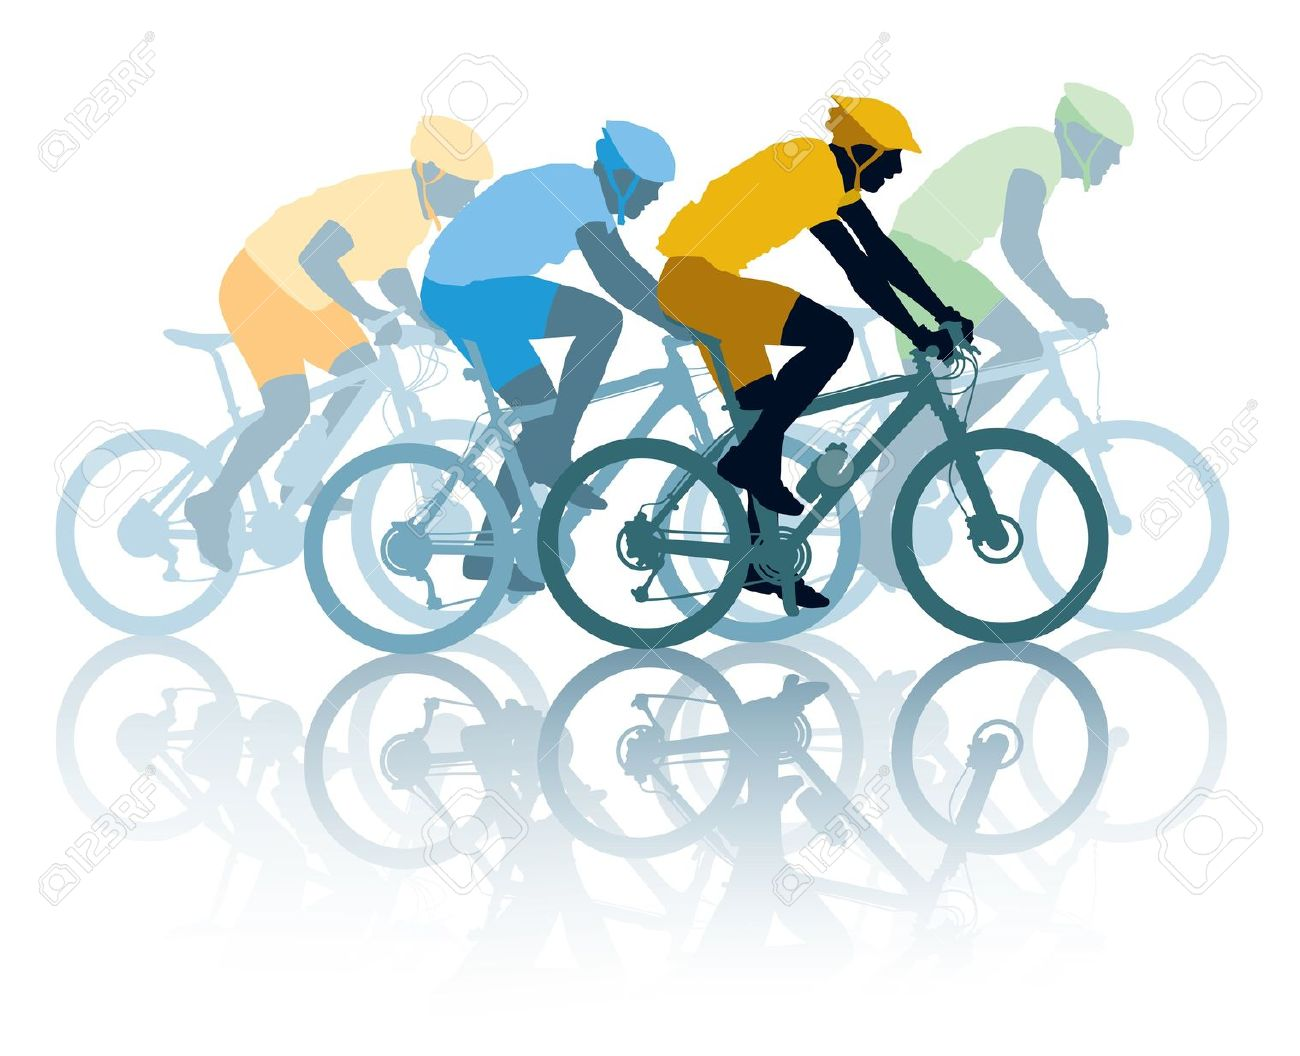 Bike clipart cycle race Clipart clipart cyclists Racing cyclist